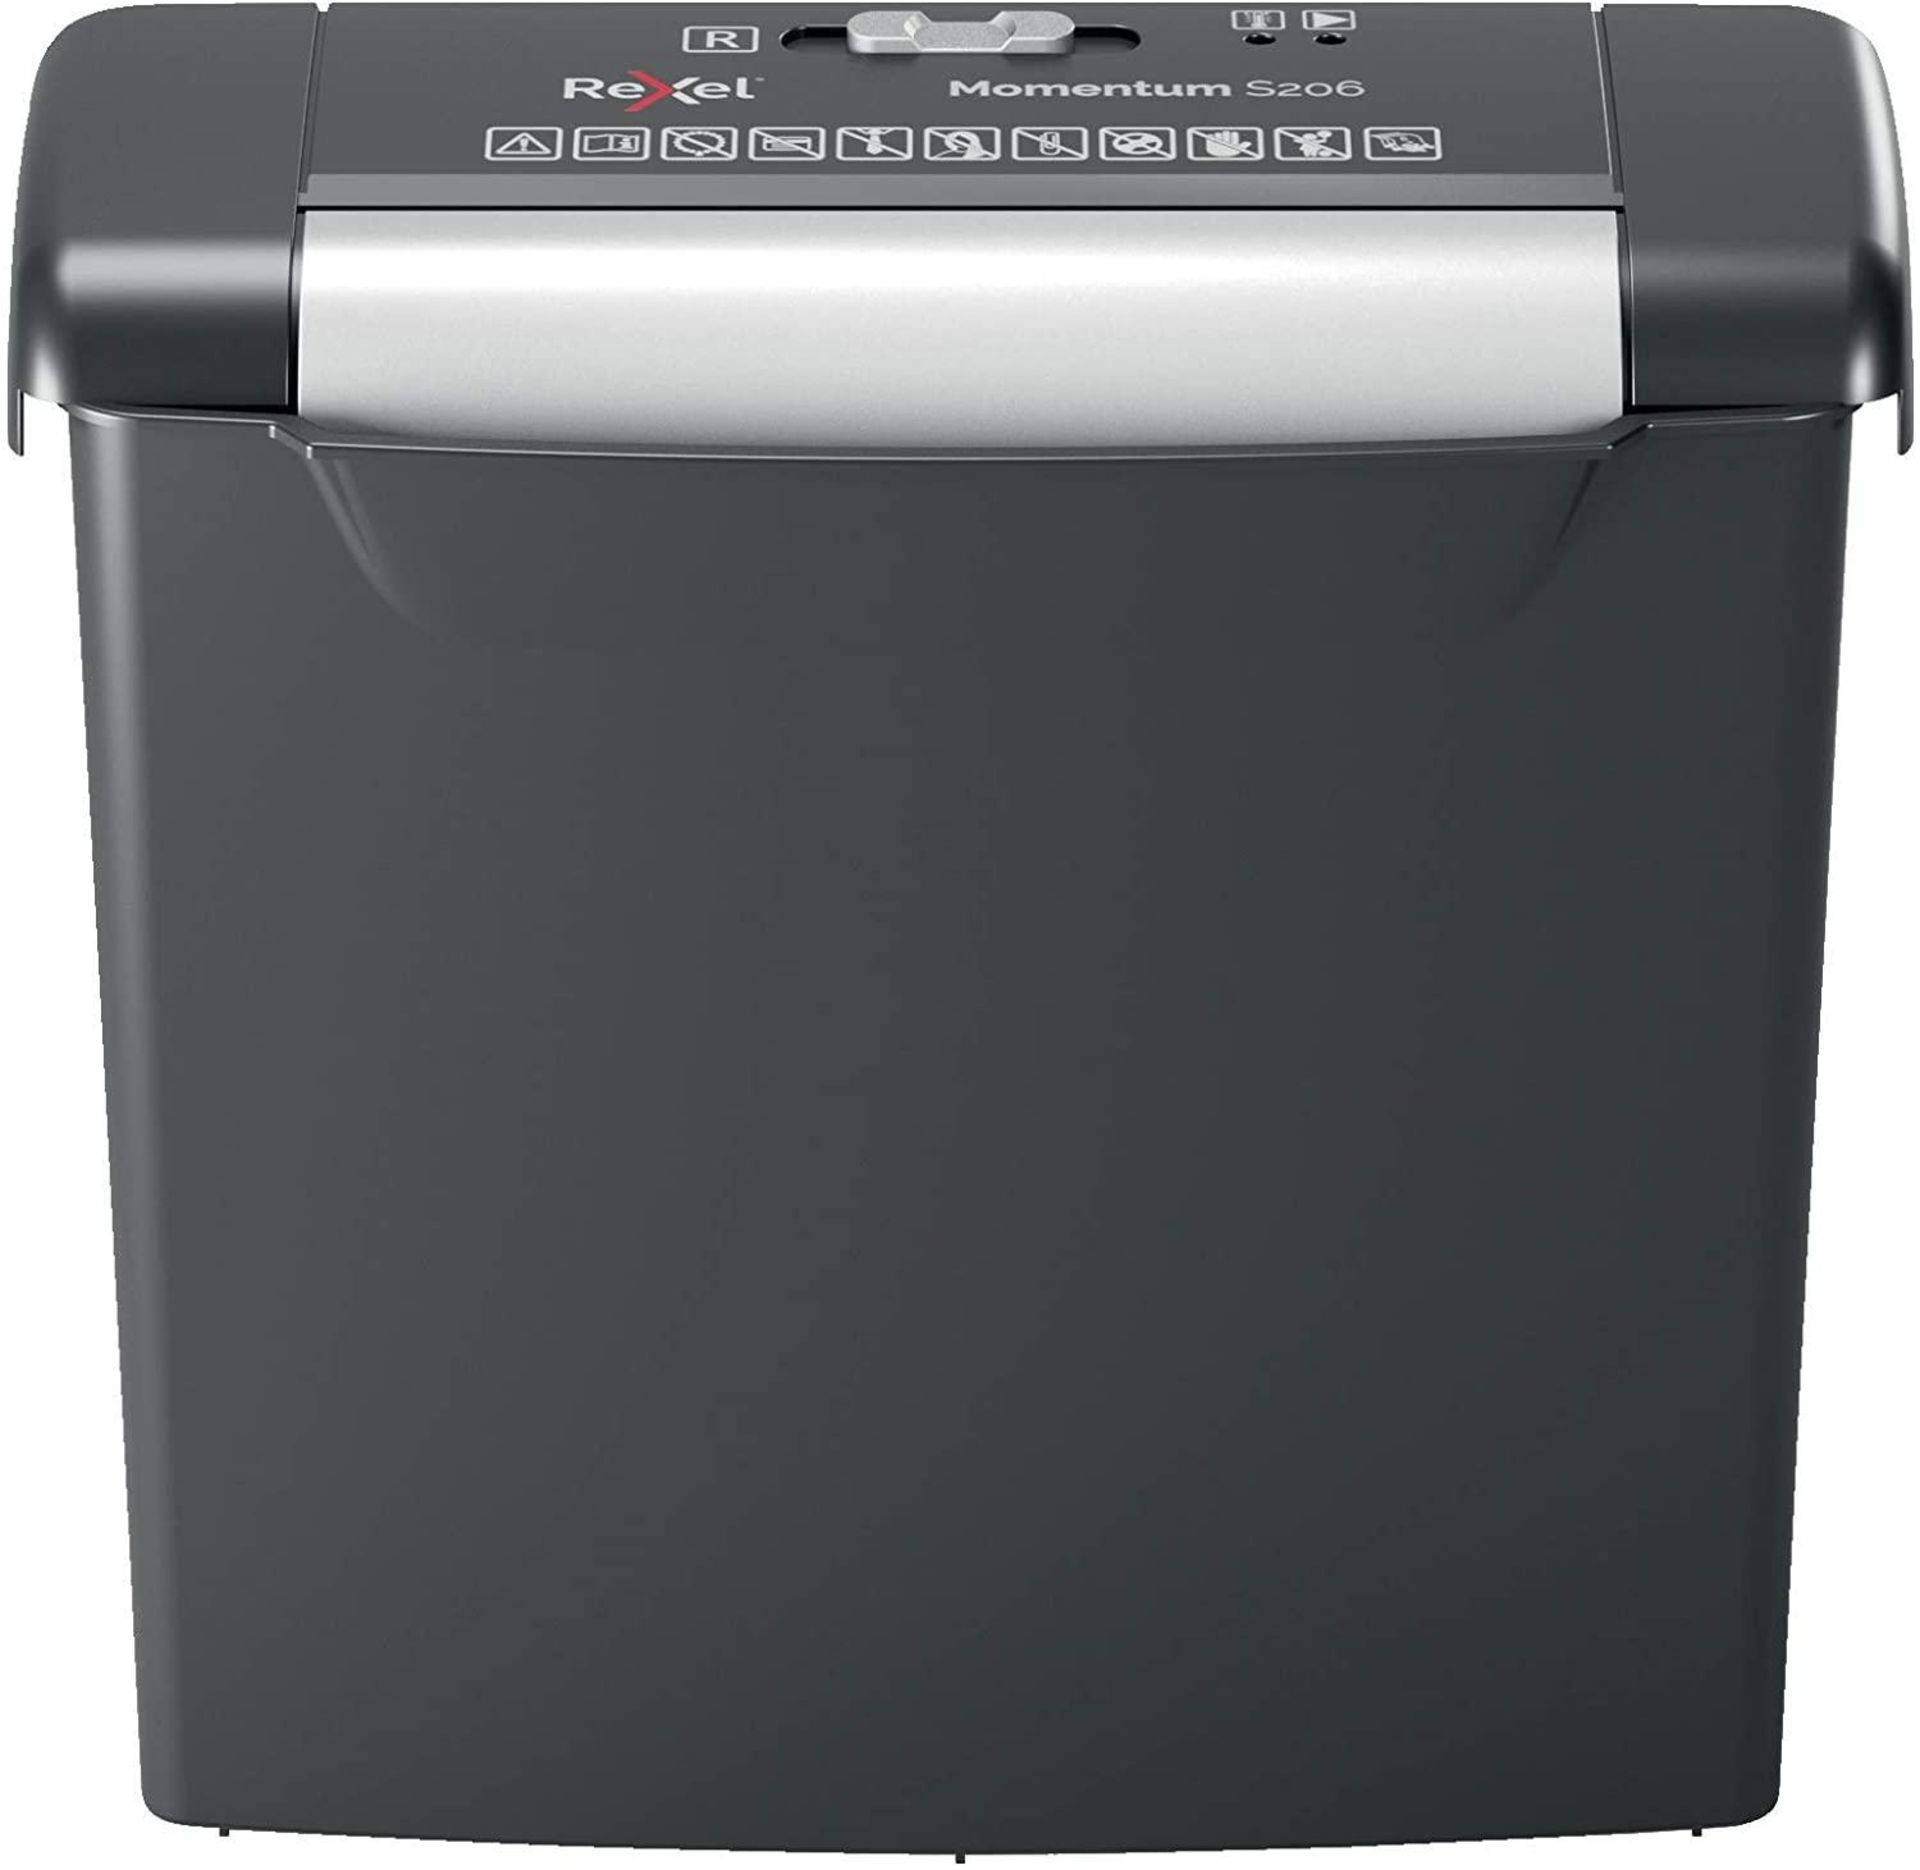 Rexel Momentum S206 Strip Cut Paper Shredder, Shreds 6 Sheets, 9 Litre Bin, Black £27.99 RRP